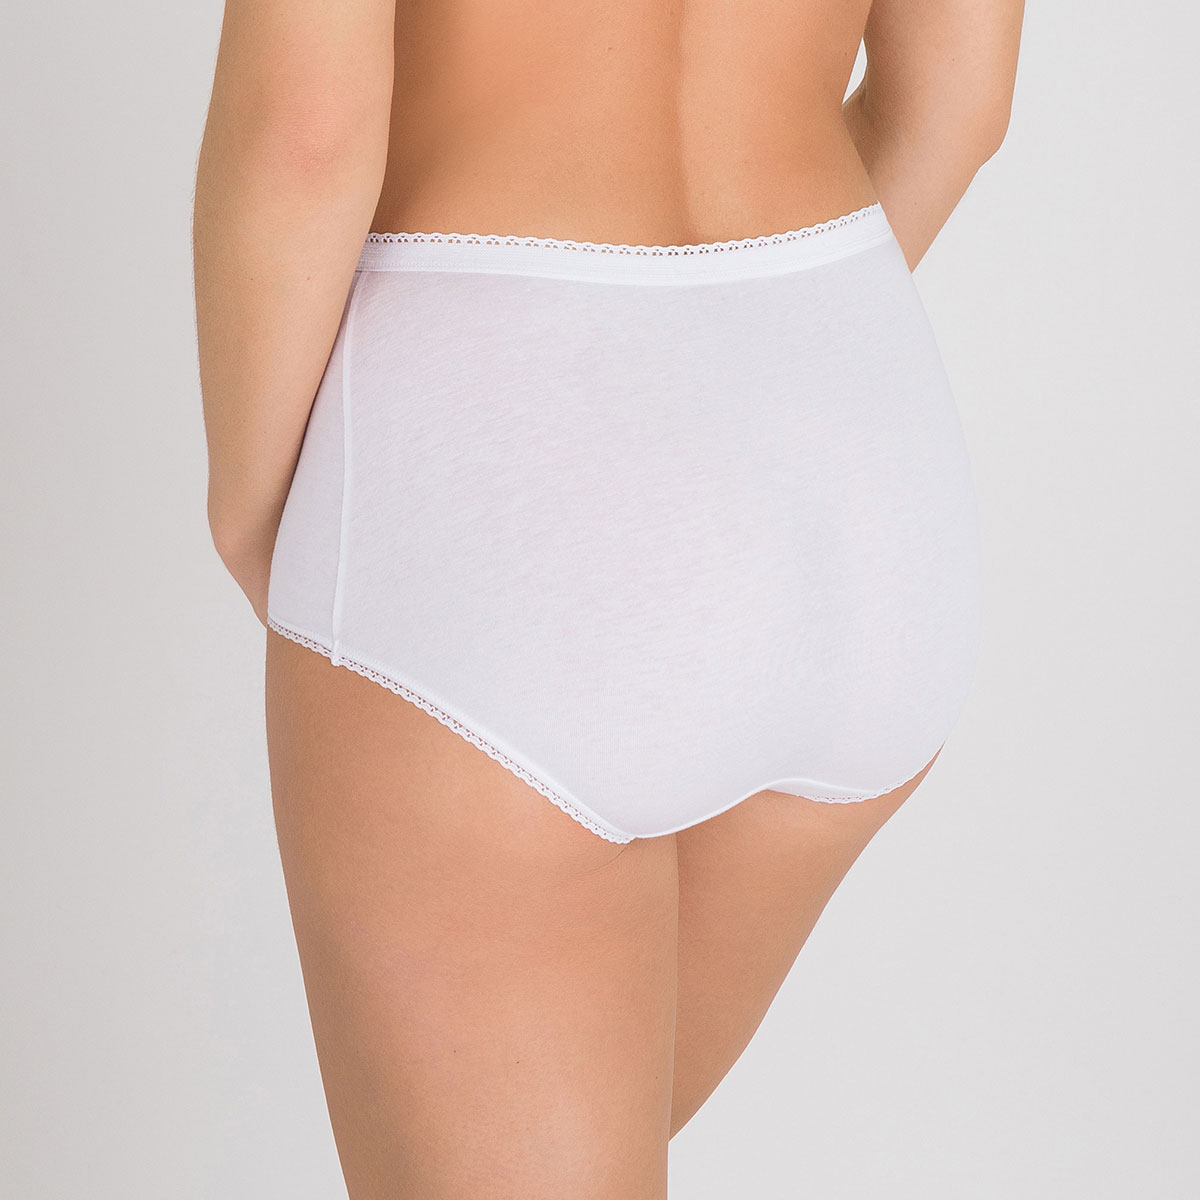 2 Culotte Maxi blanches – Coton Stretch-PLAYTEX